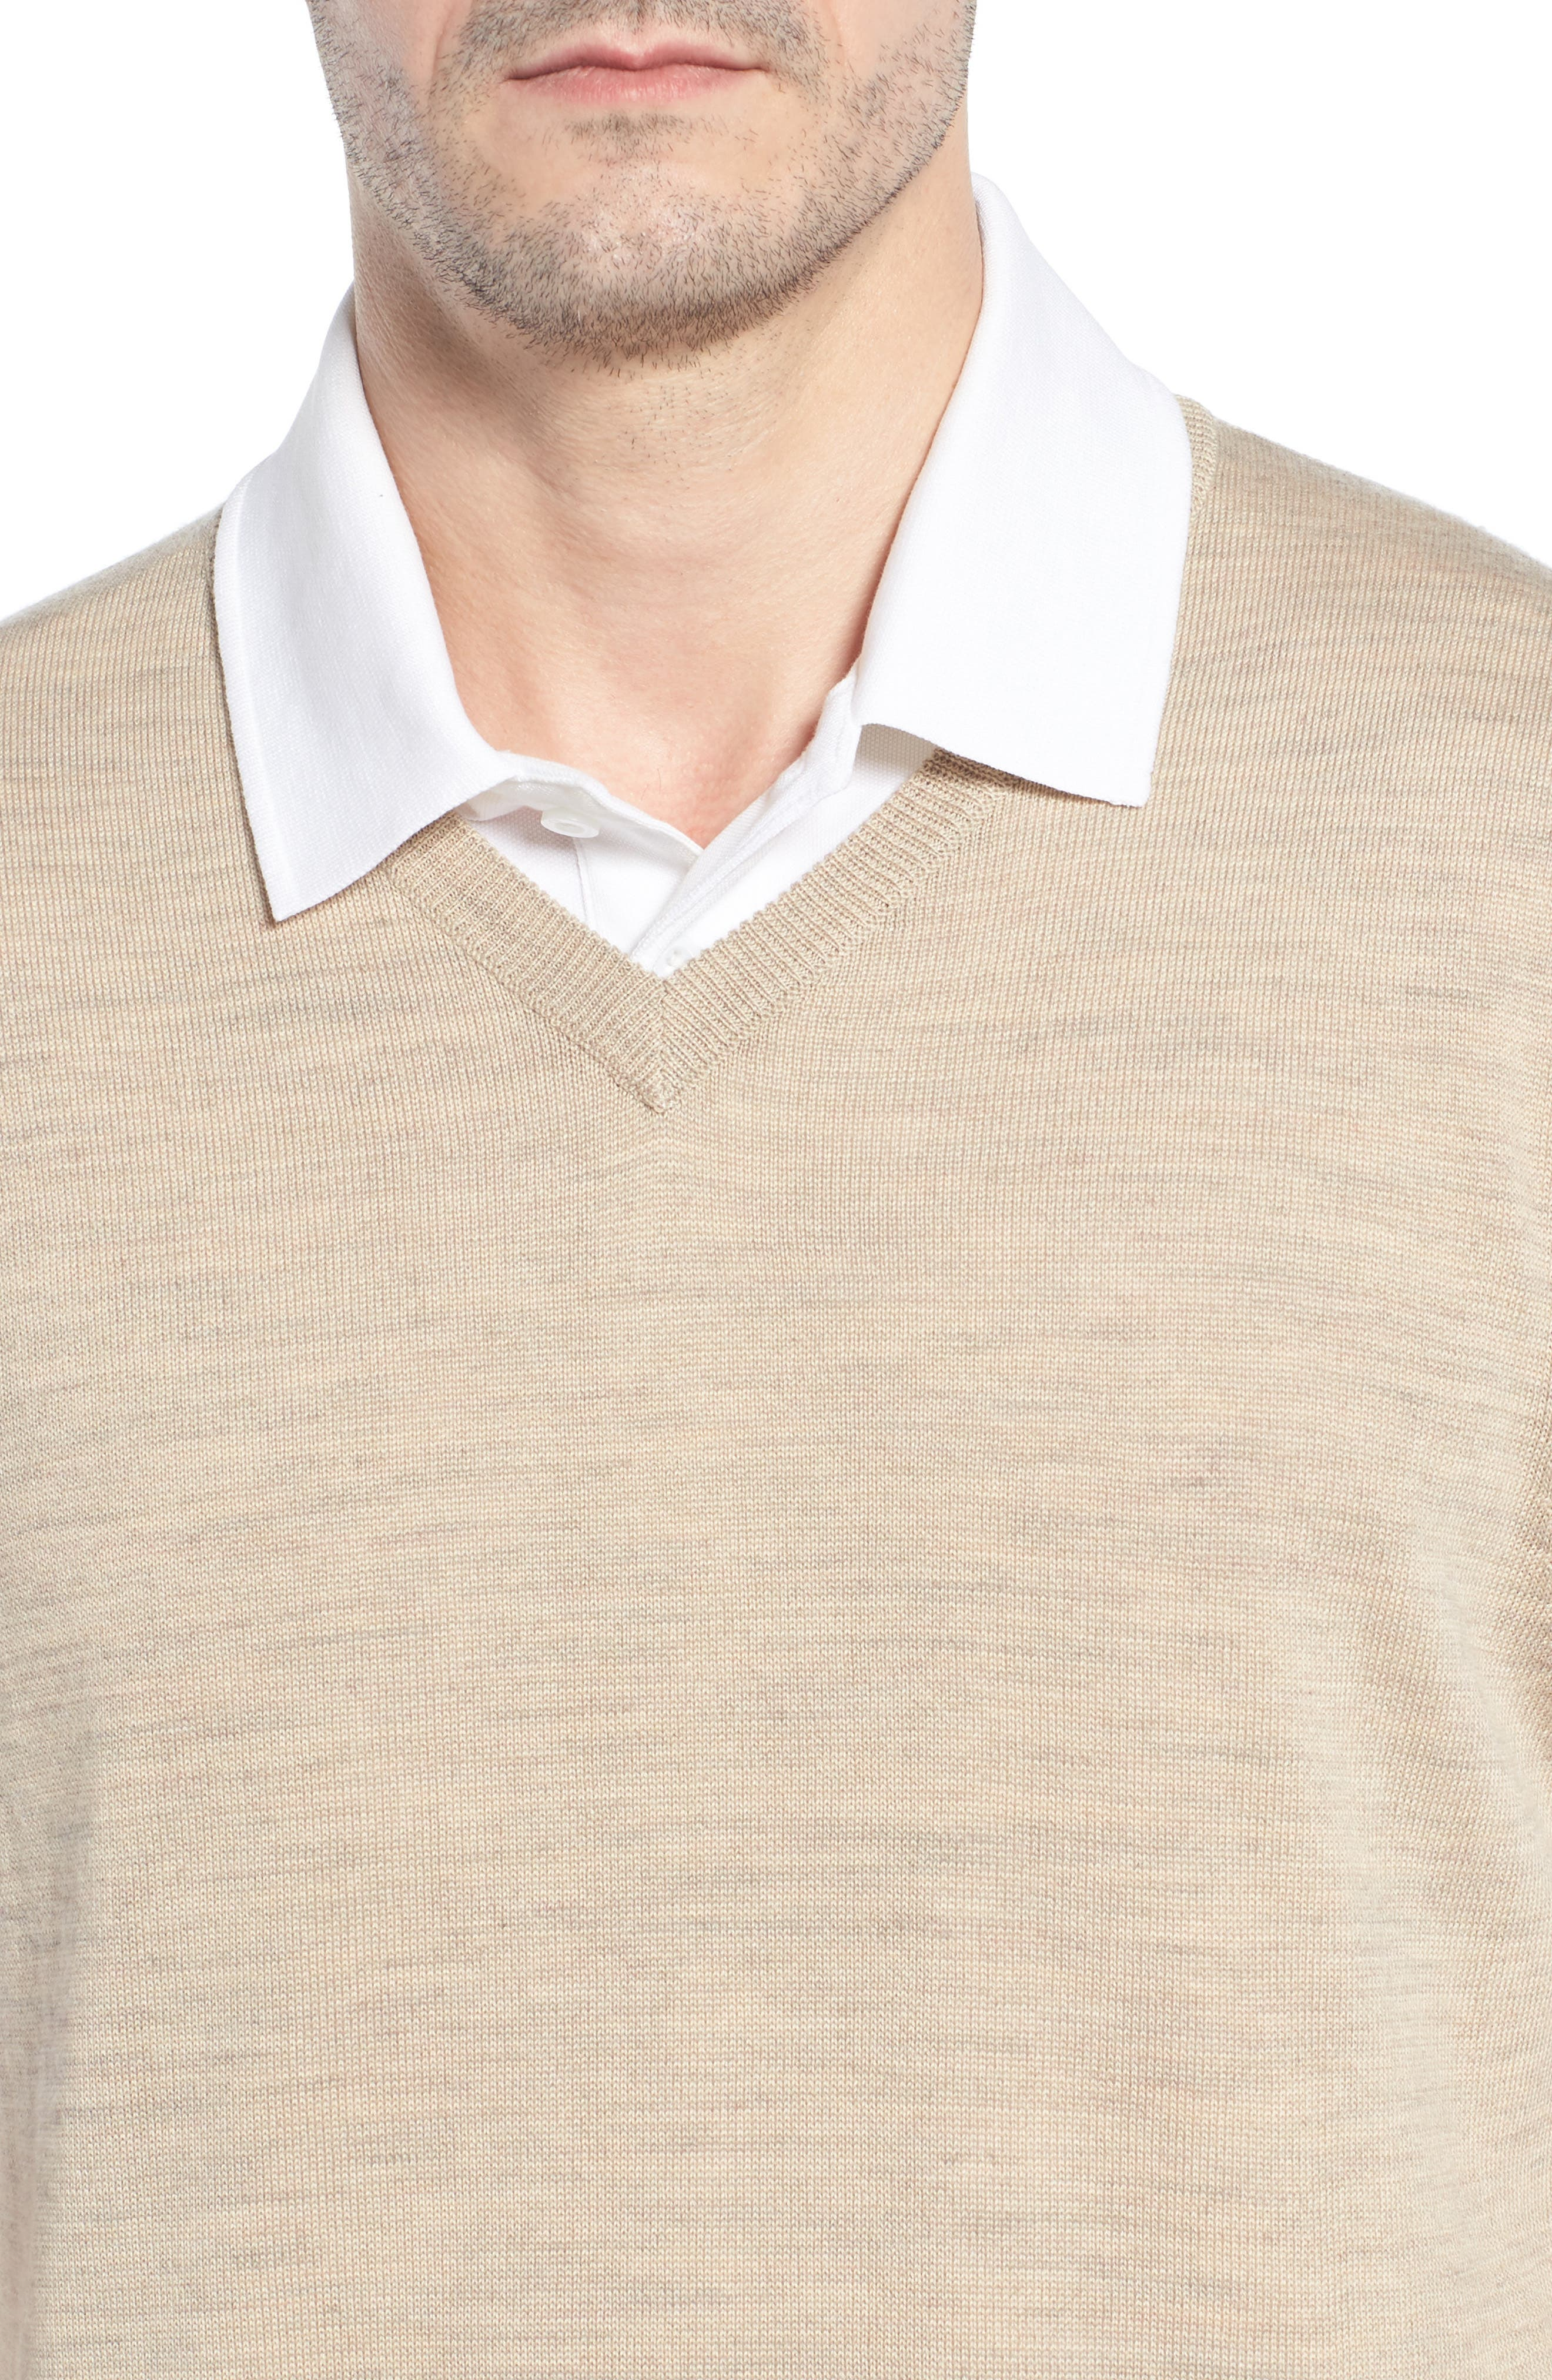 'Douglas' Merino Wool Blend V-Neck Sweater Vest,                             Alternate thumbnail 4, color,                             SAND HEATHER